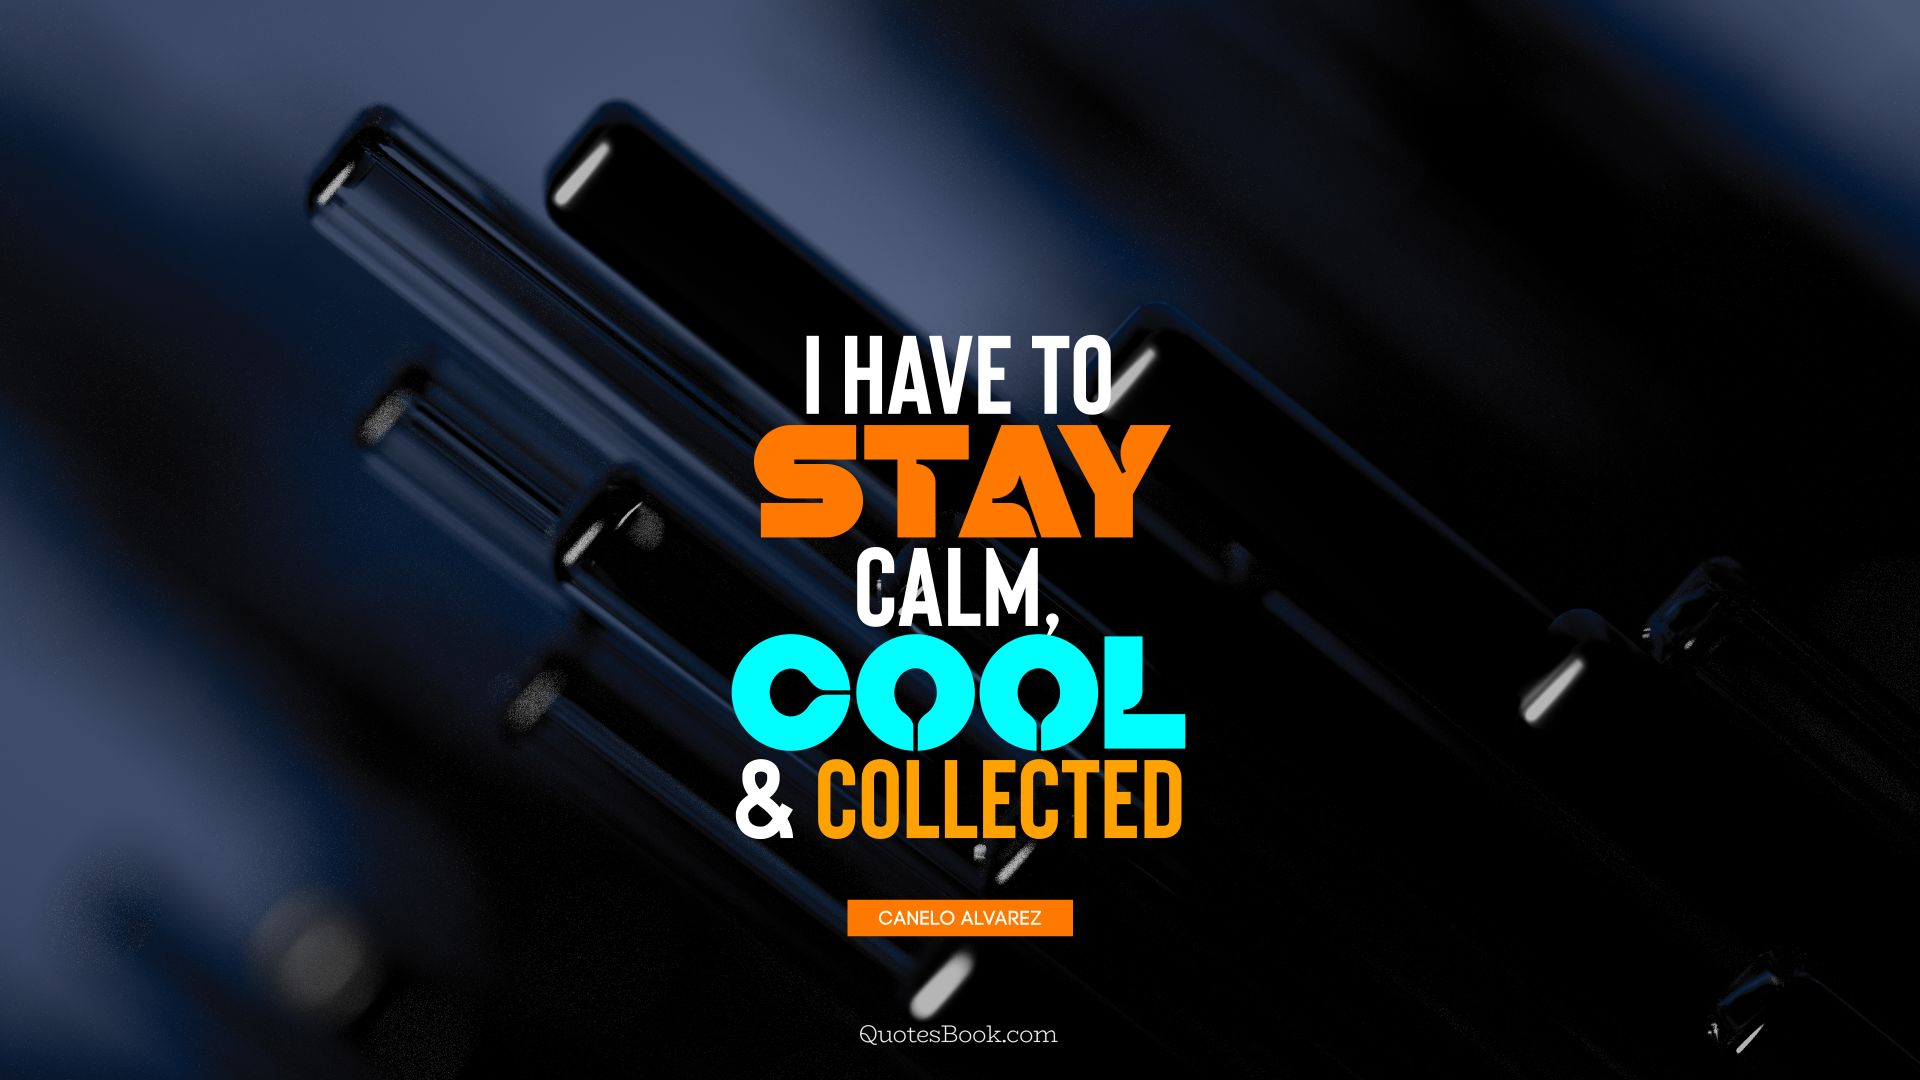 I have to stay calm, cool, and collected. - Quote by Canelo Alvarez